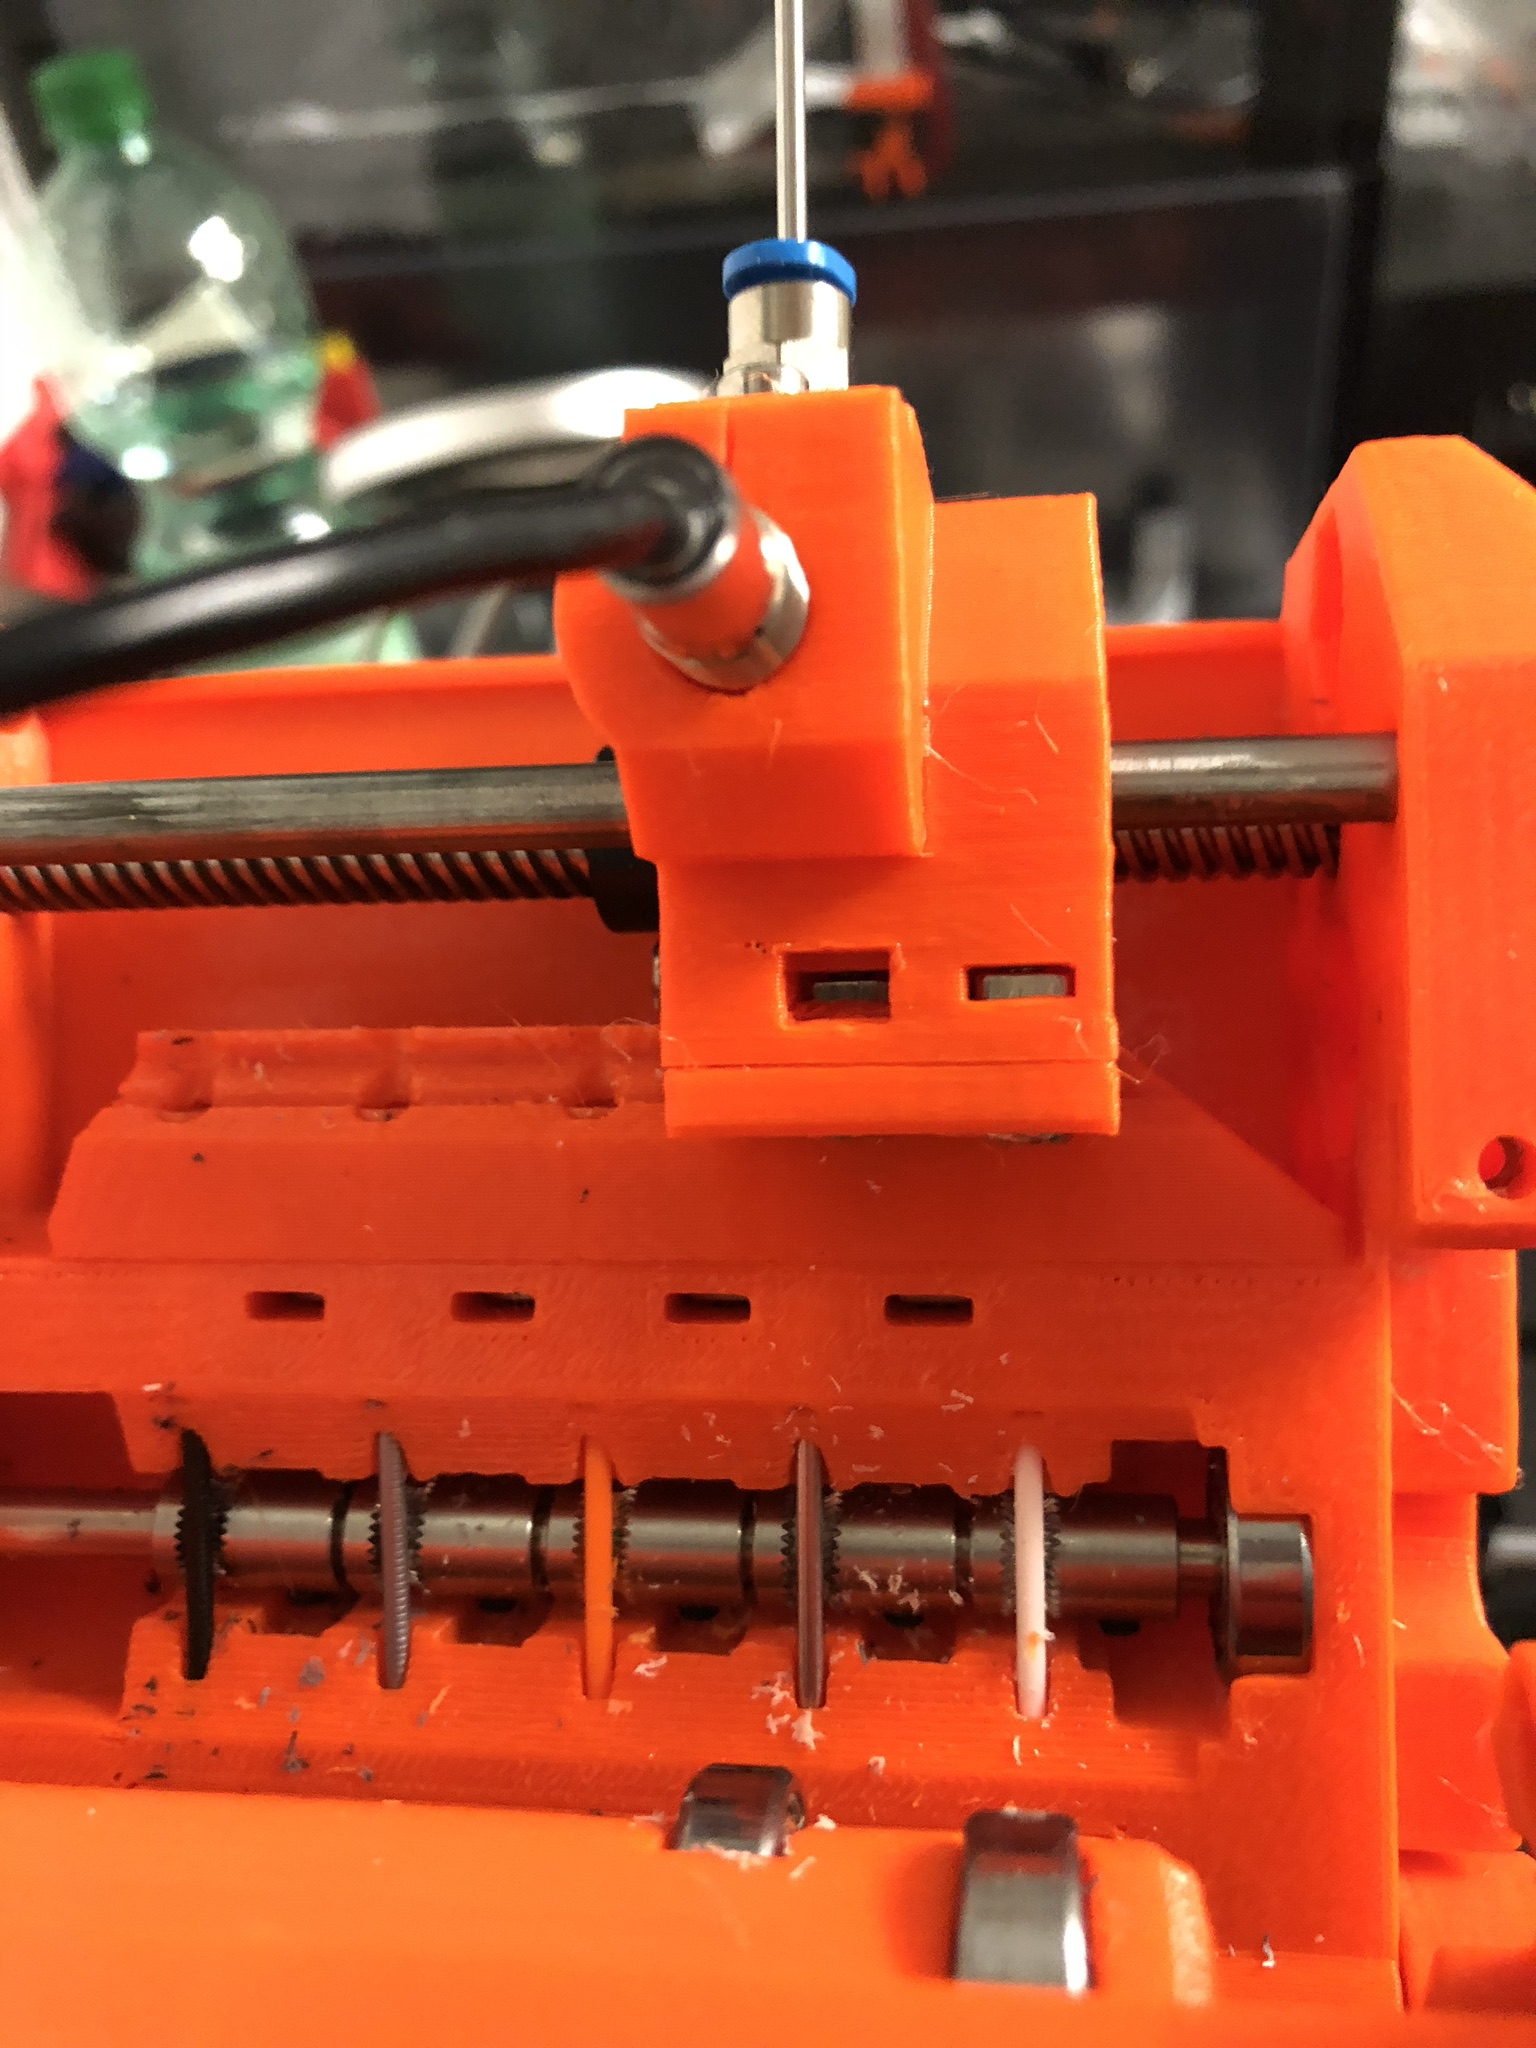 MMU 2 0 load / unload issue · Issue #1163 · prusa3d/Prusa